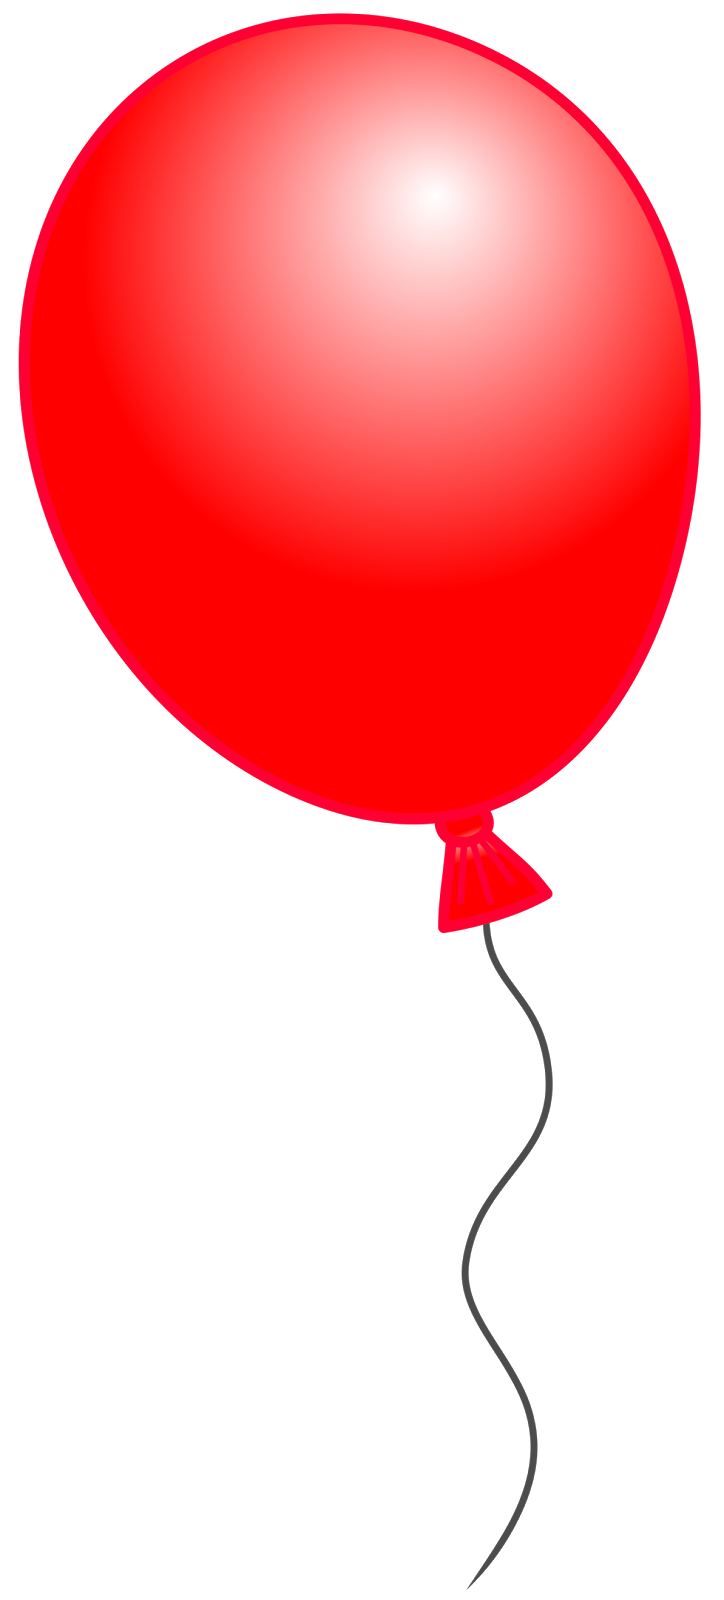 Balloon release clipart image library library Clip art of balloons - Clip Art Library image library library